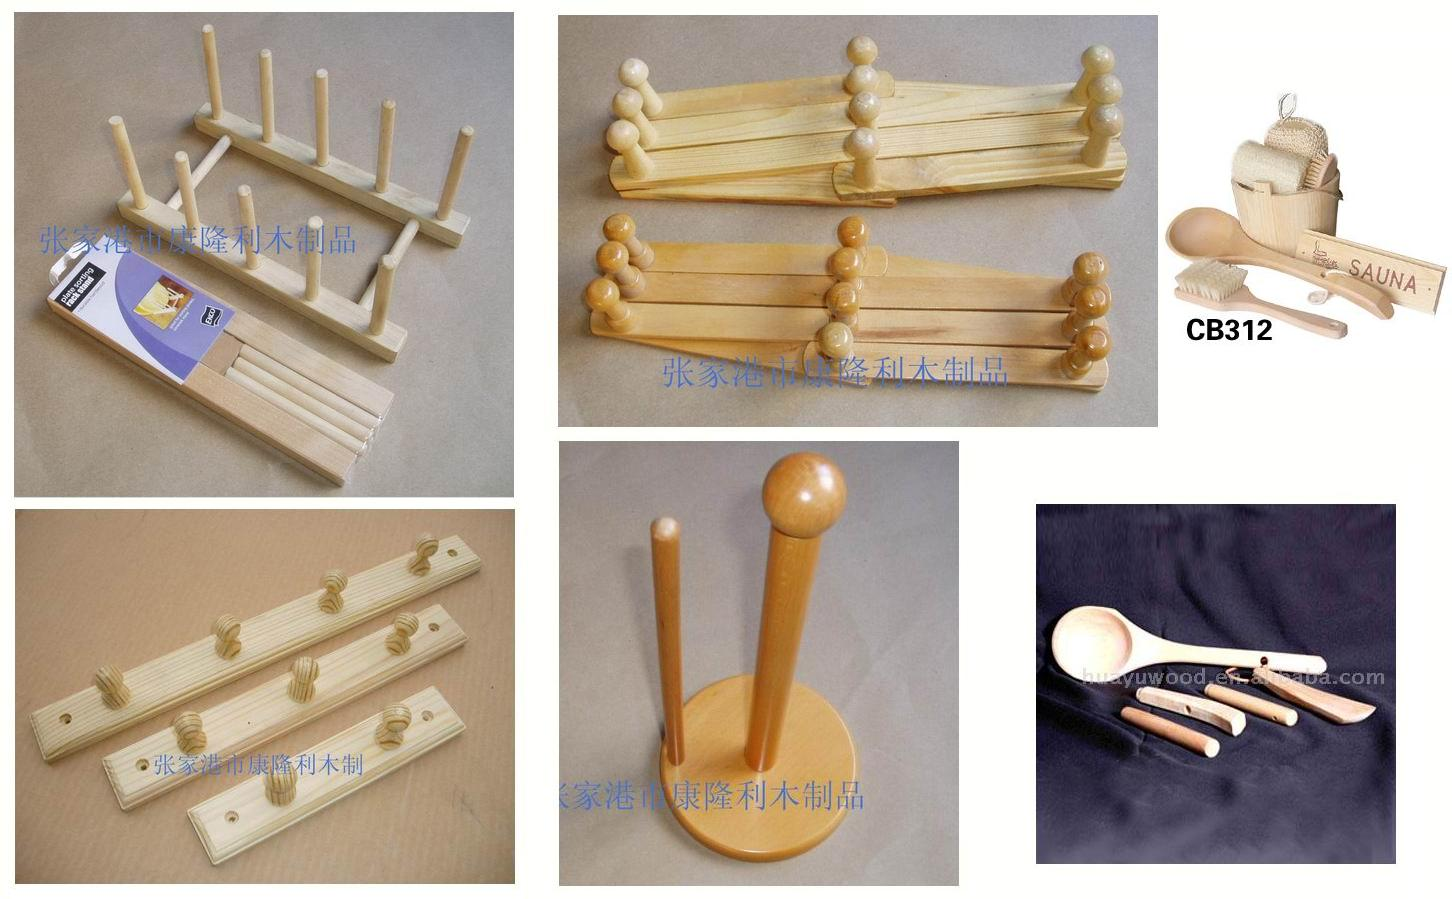 wooden parts: clothes racks, furniture handles and knobs, combs